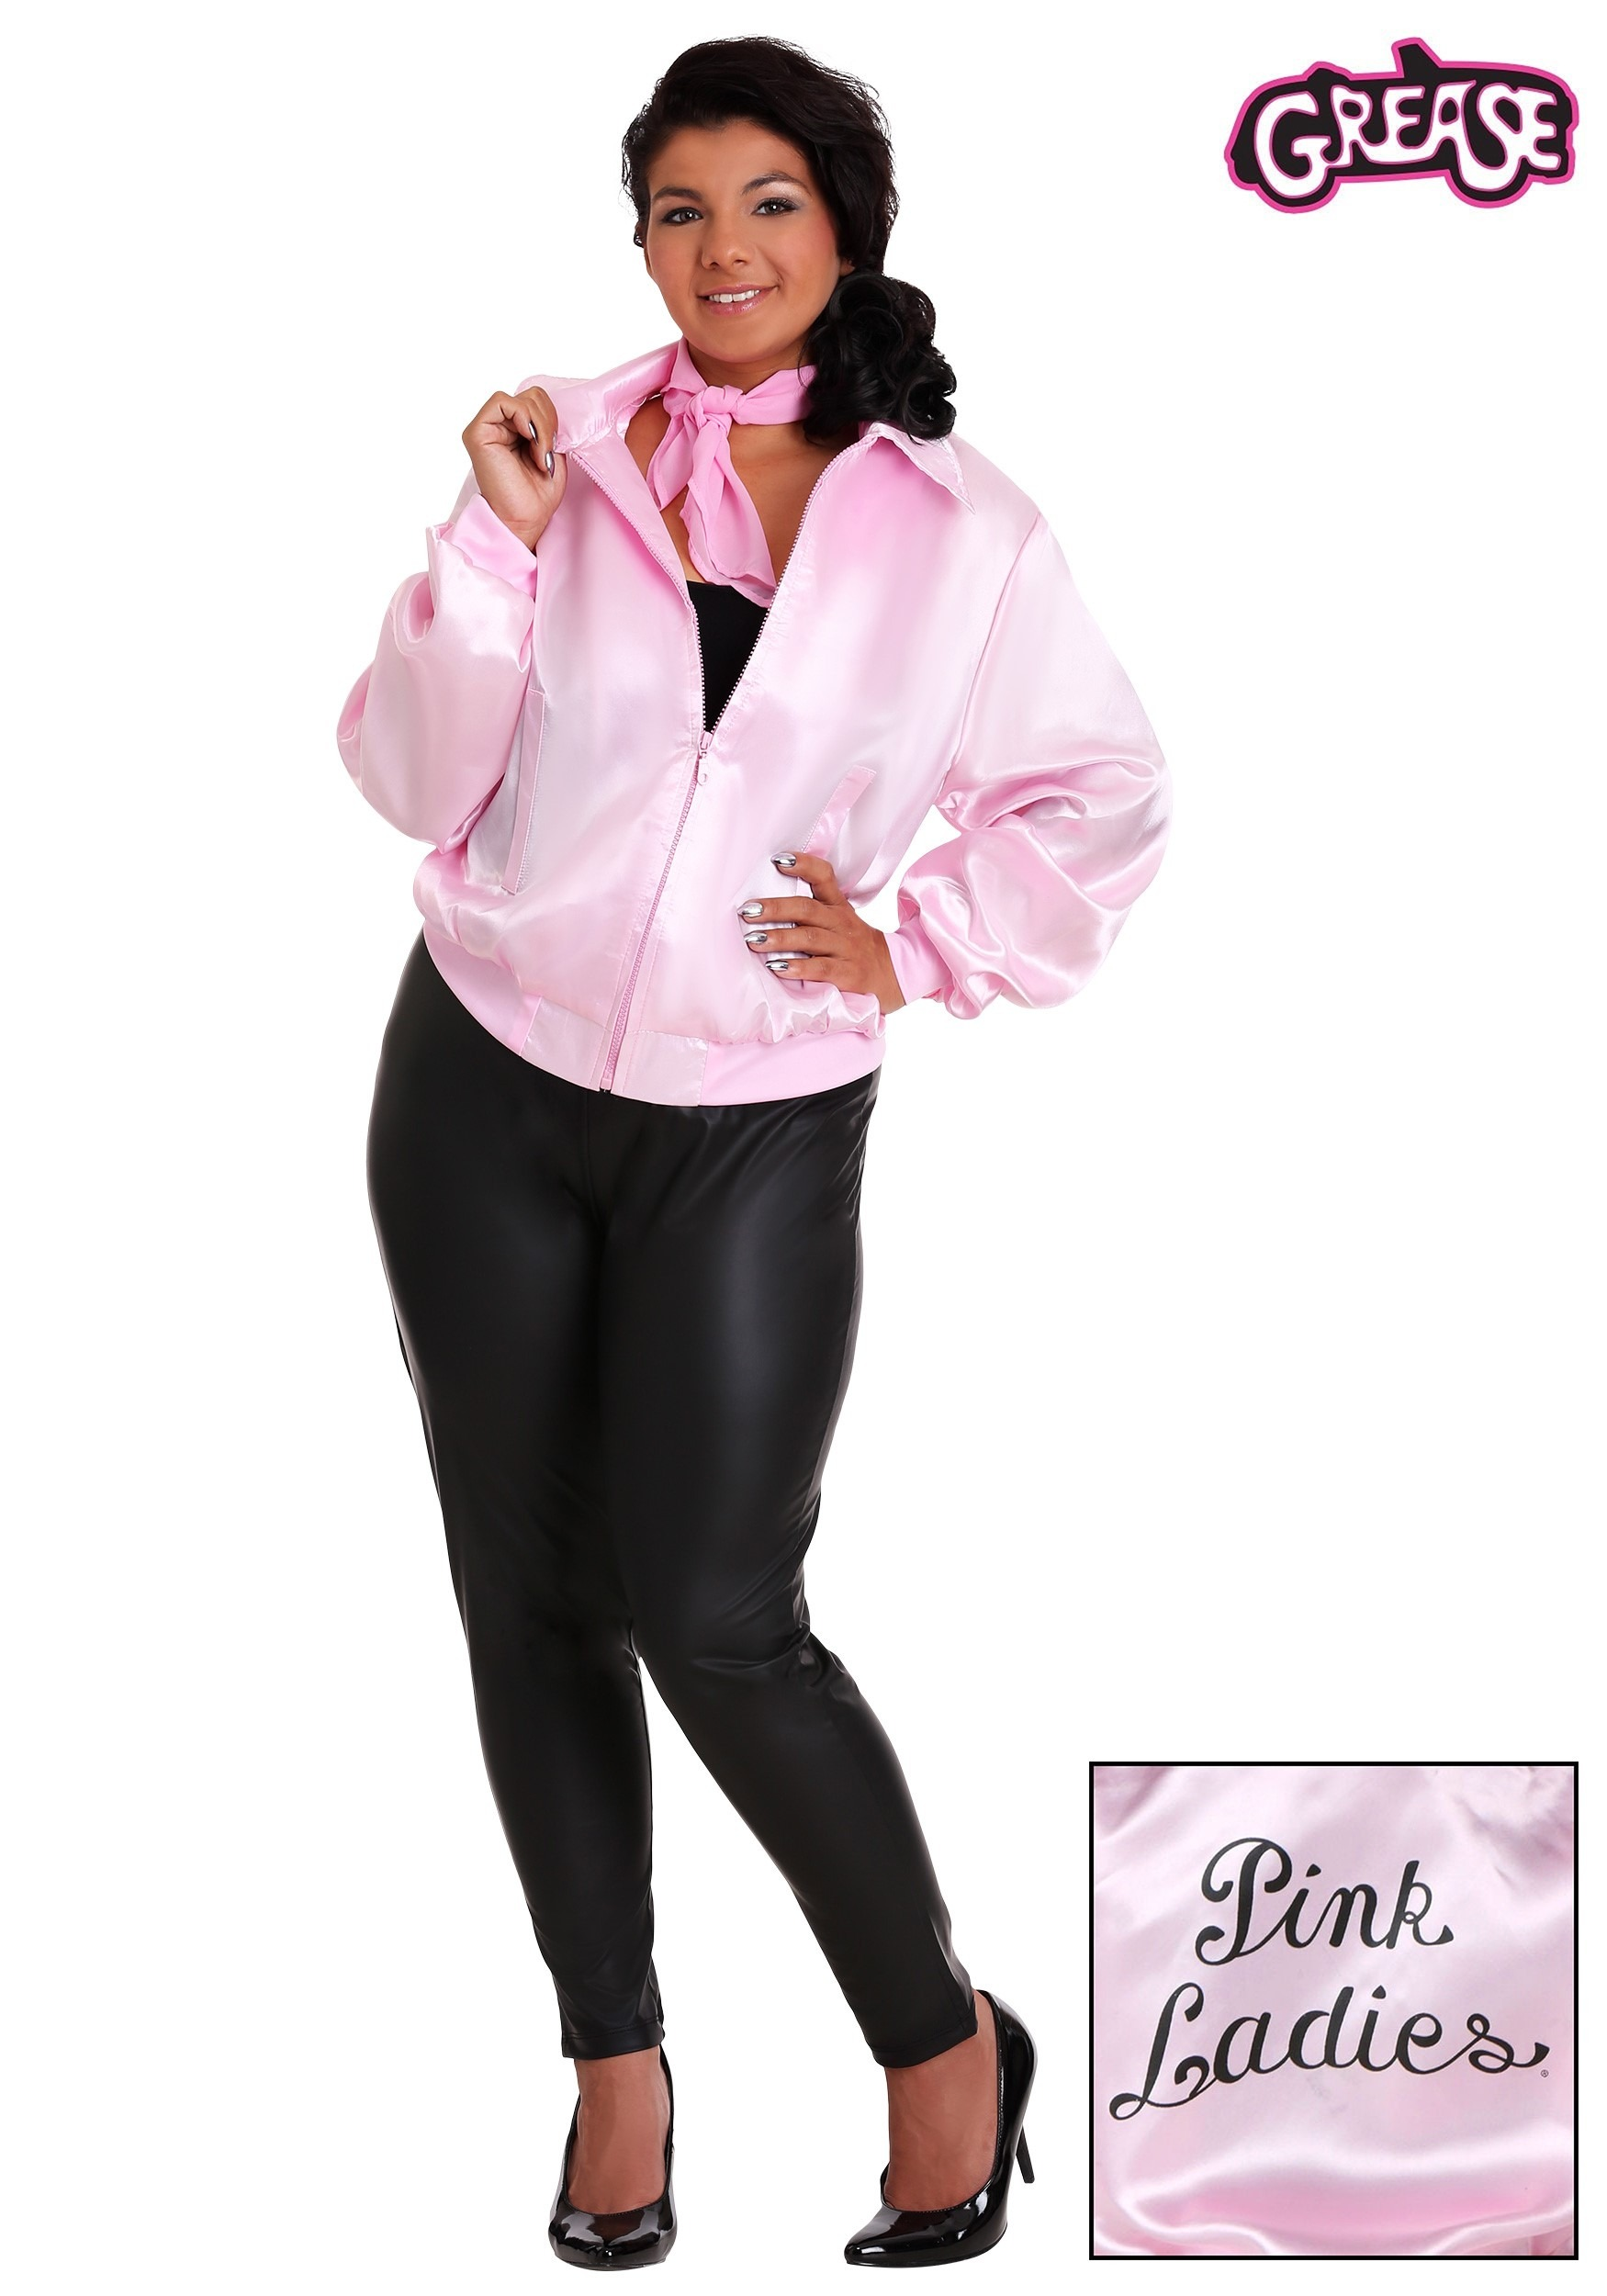 Halloween Decorations For The Home Grease Plus Size Pink Ladies Jacket